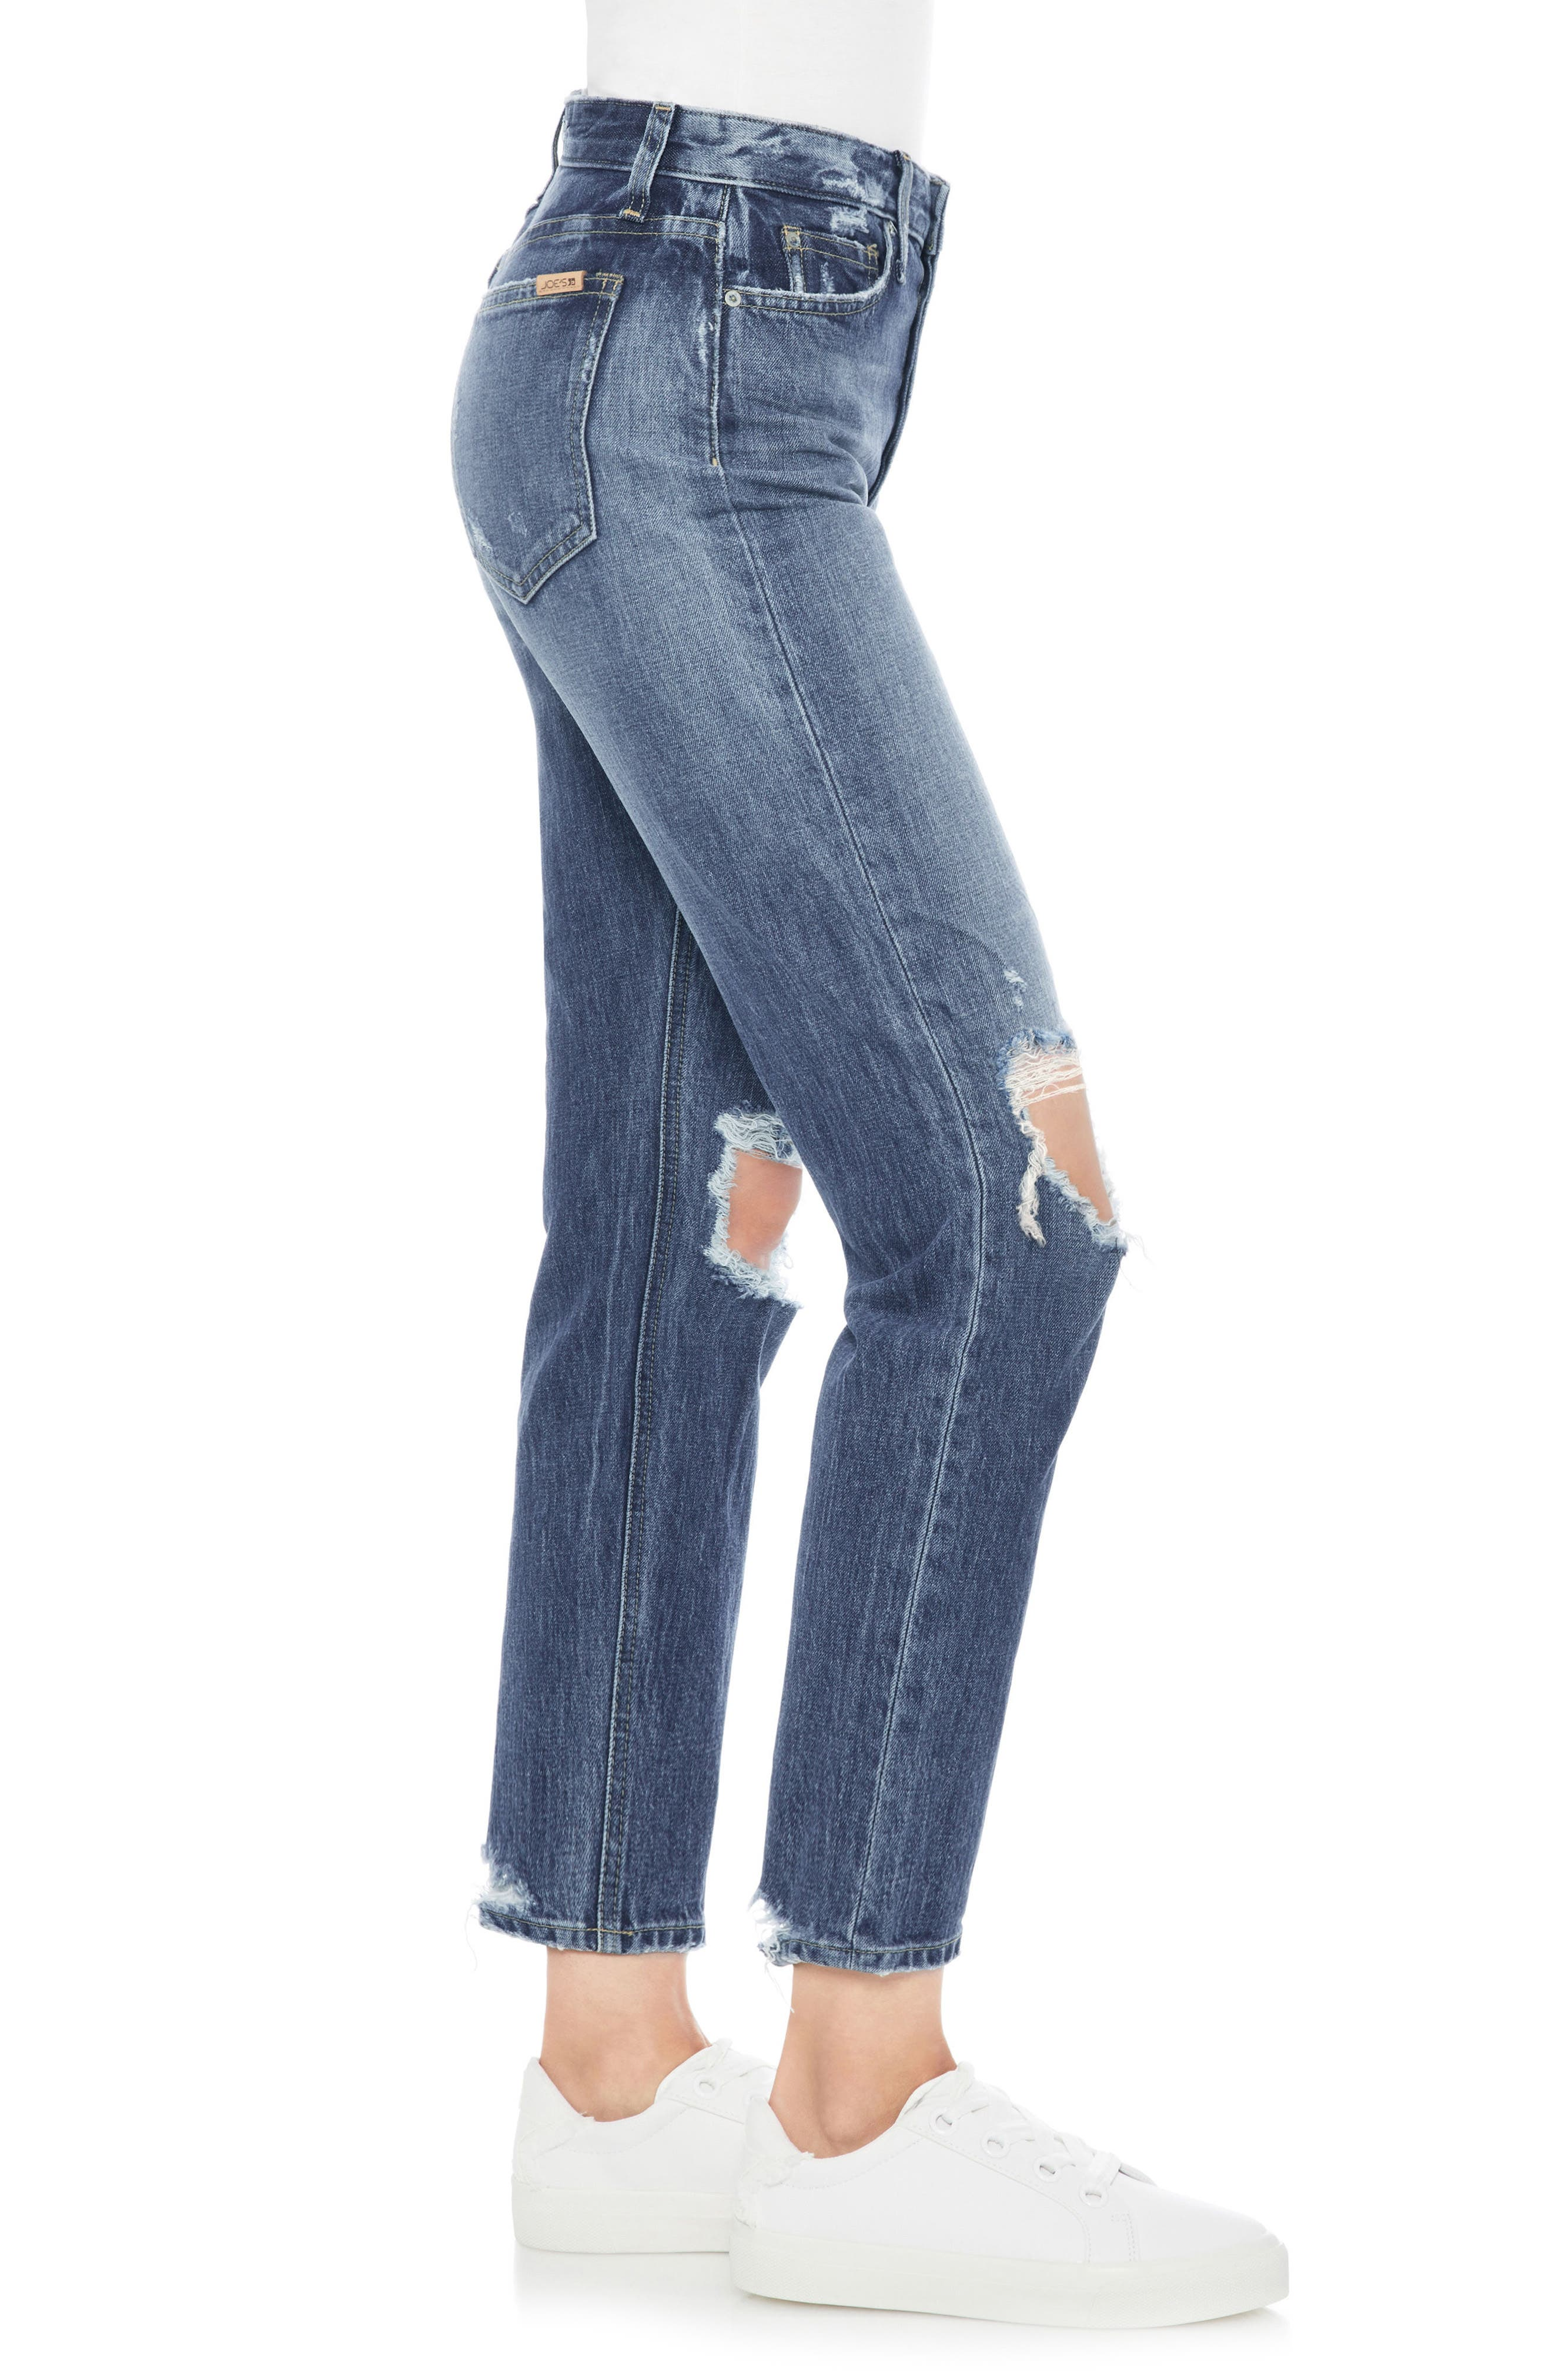 Smith Ripped High Waist Ankle Jeans,                             Alternate thumbnail 2, color,                             LANNAH